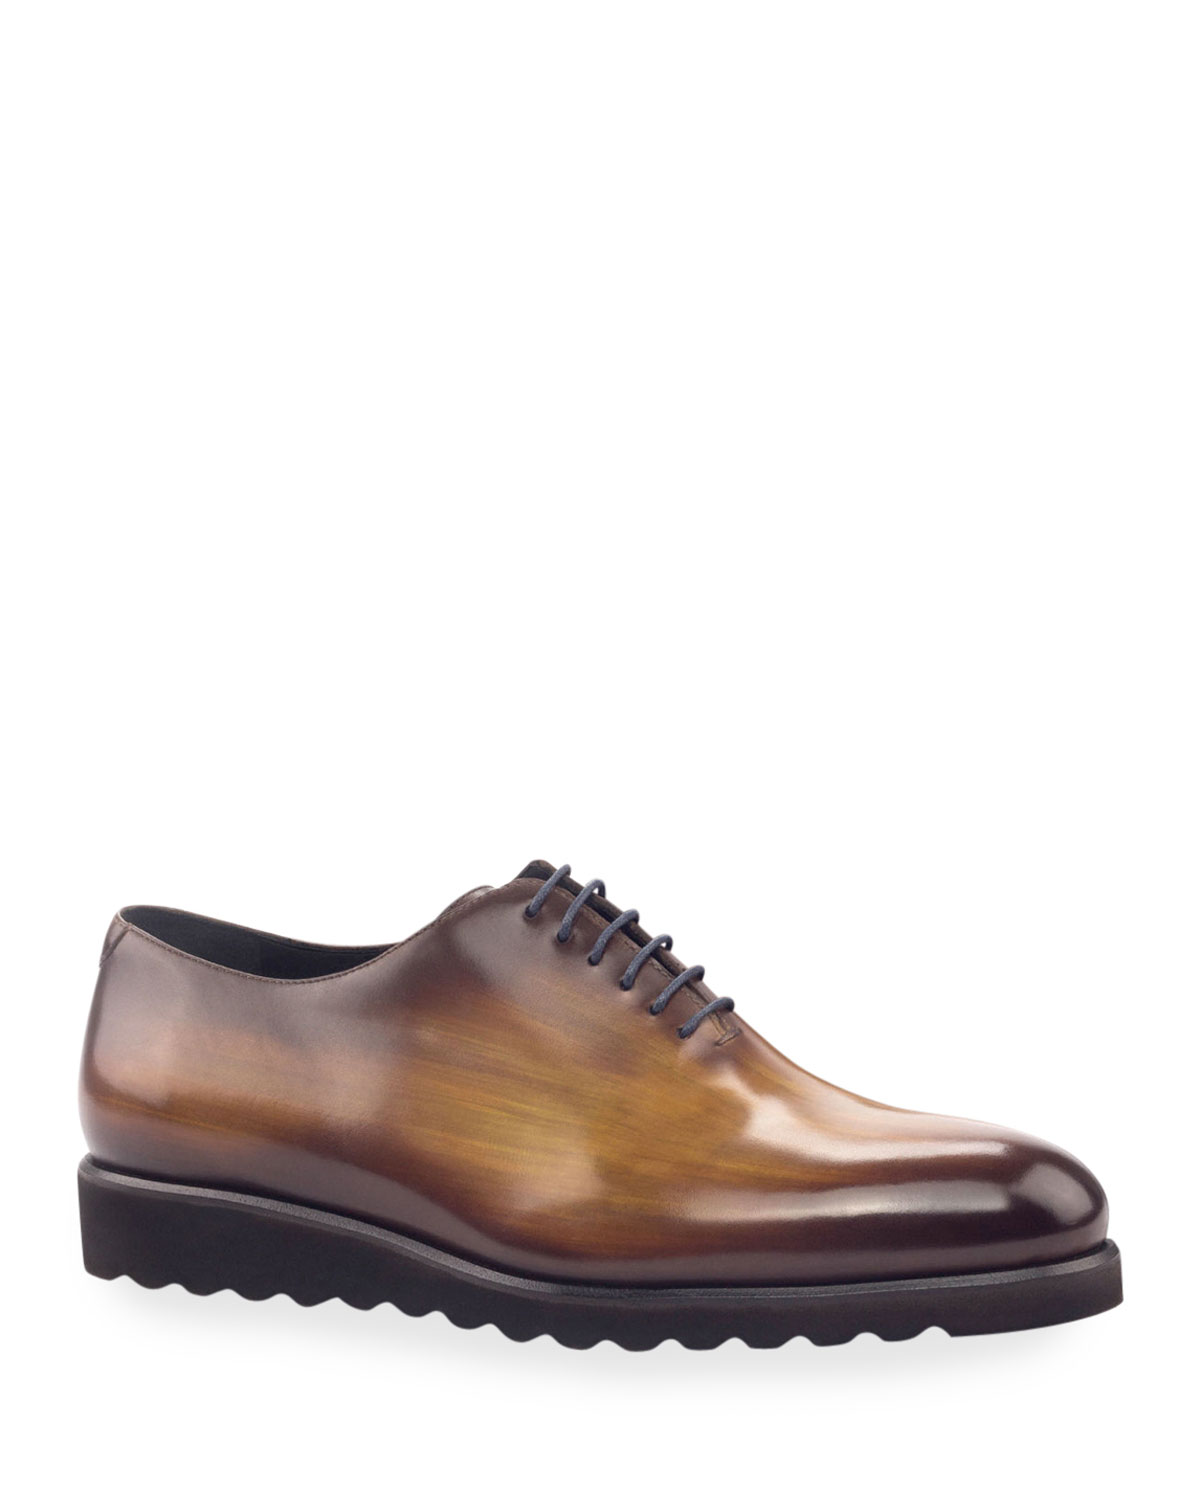 Men's Torino Whole-Cut Patina Leather Oxford Shoes